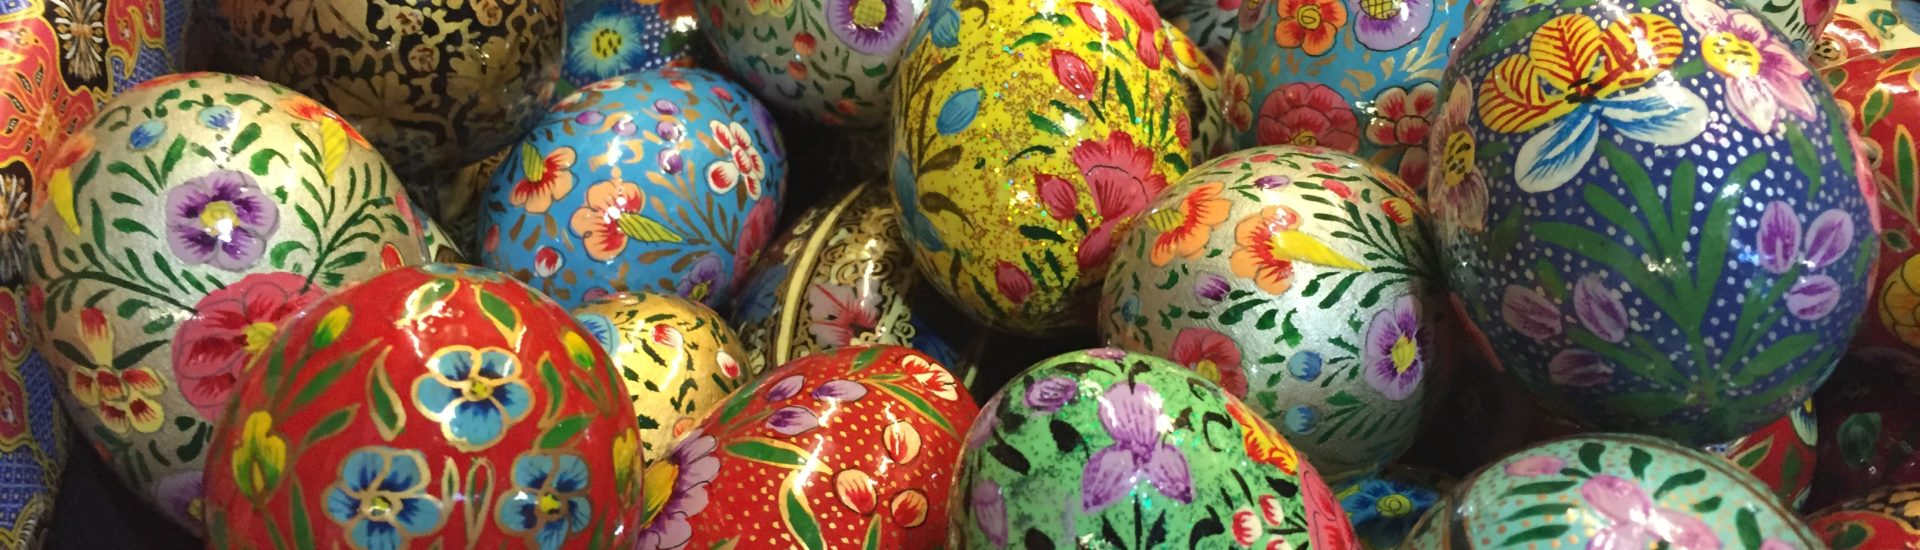 Decorative and colourful eggs from Malaysia's Peranakan community.